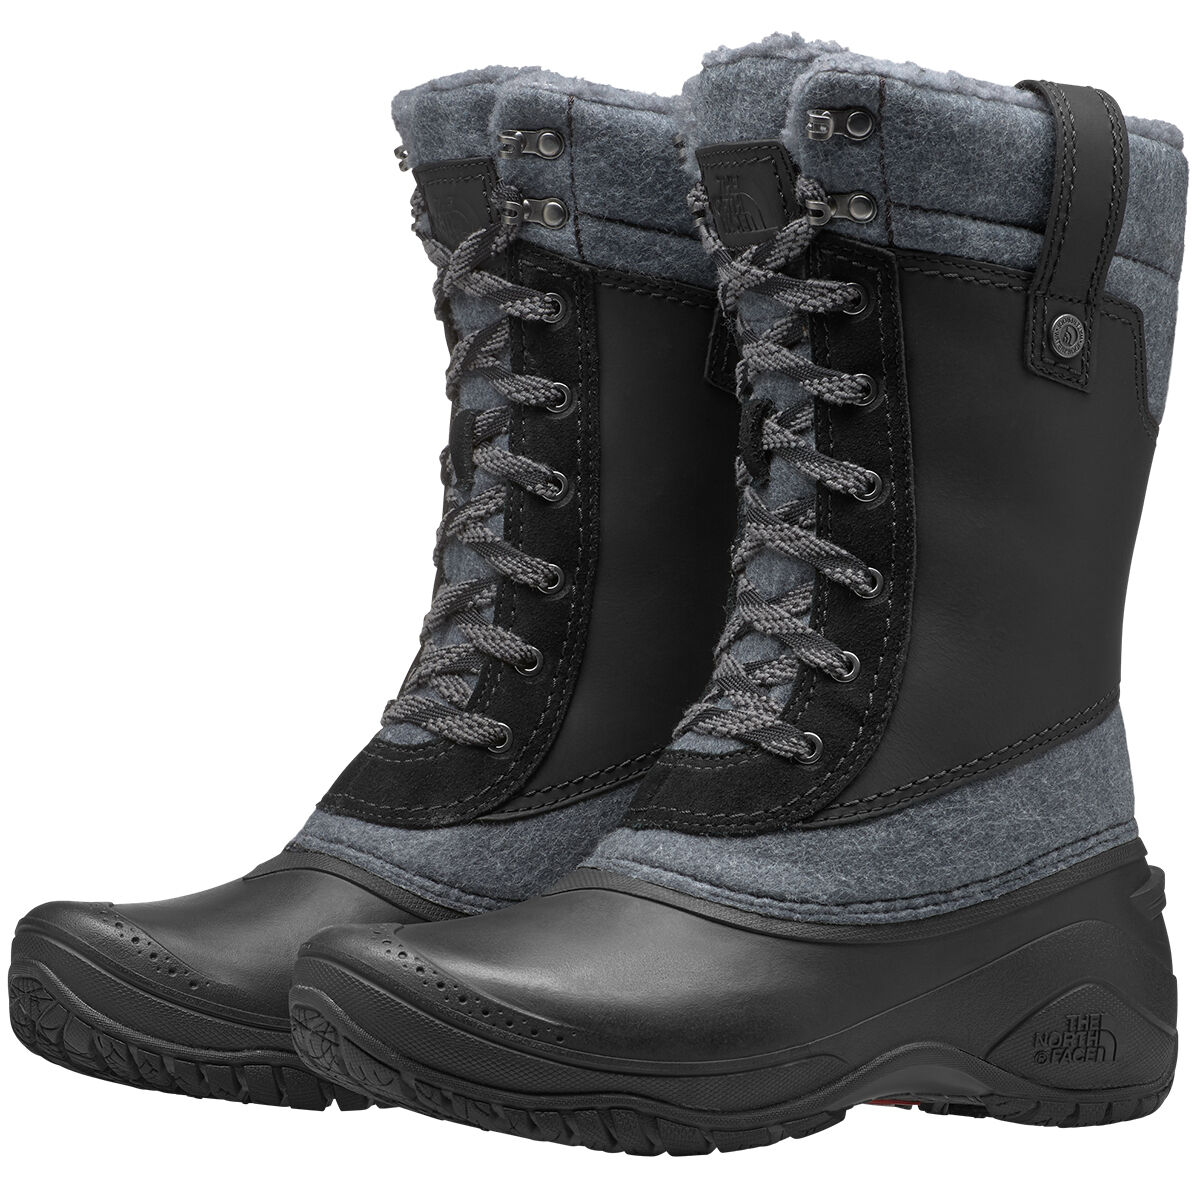 The North Face Shellista 3 women's boots